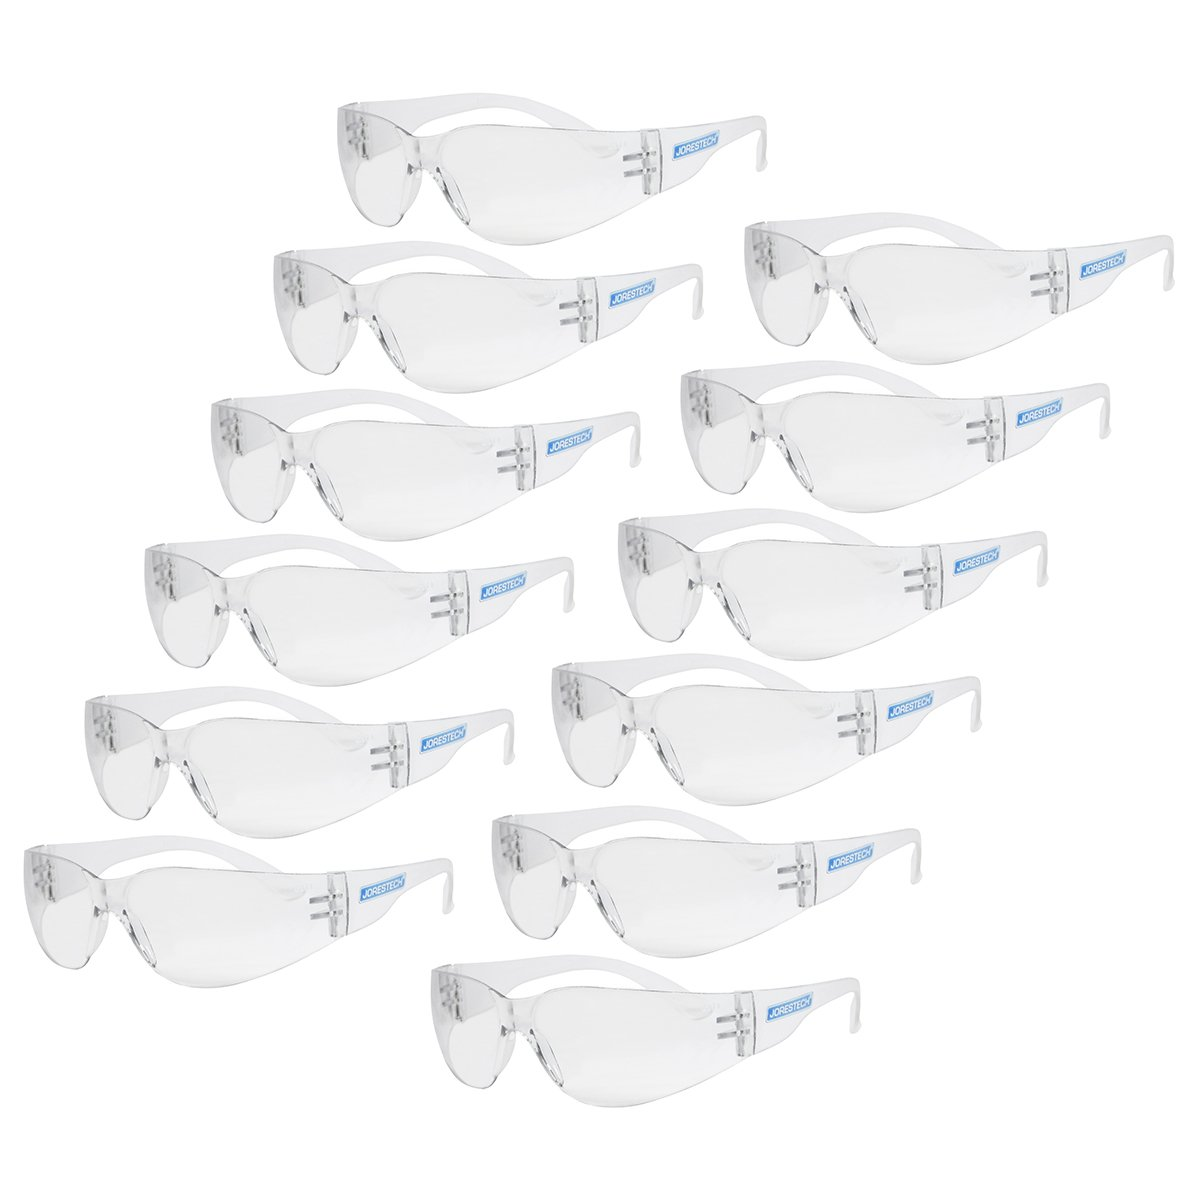 JORESTECH Eyewear Protective Safety Glasses, Polycarbonate Impact Resistant Lens Pack of 12 (Clear) by JORESTECH (Image #1)